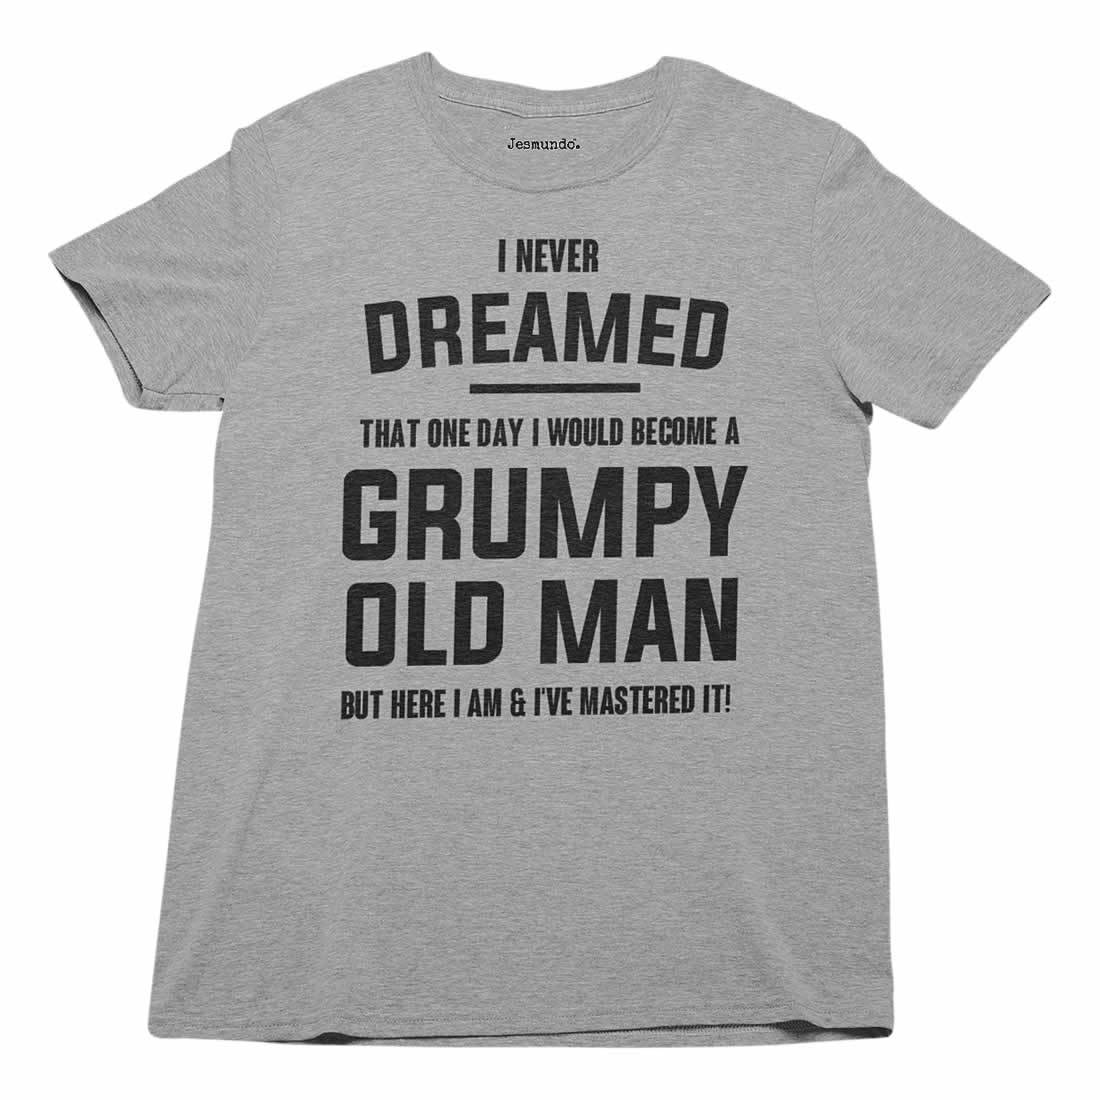 I Never Dreamed I Would Be A Grumpy Old Man T-Shirt